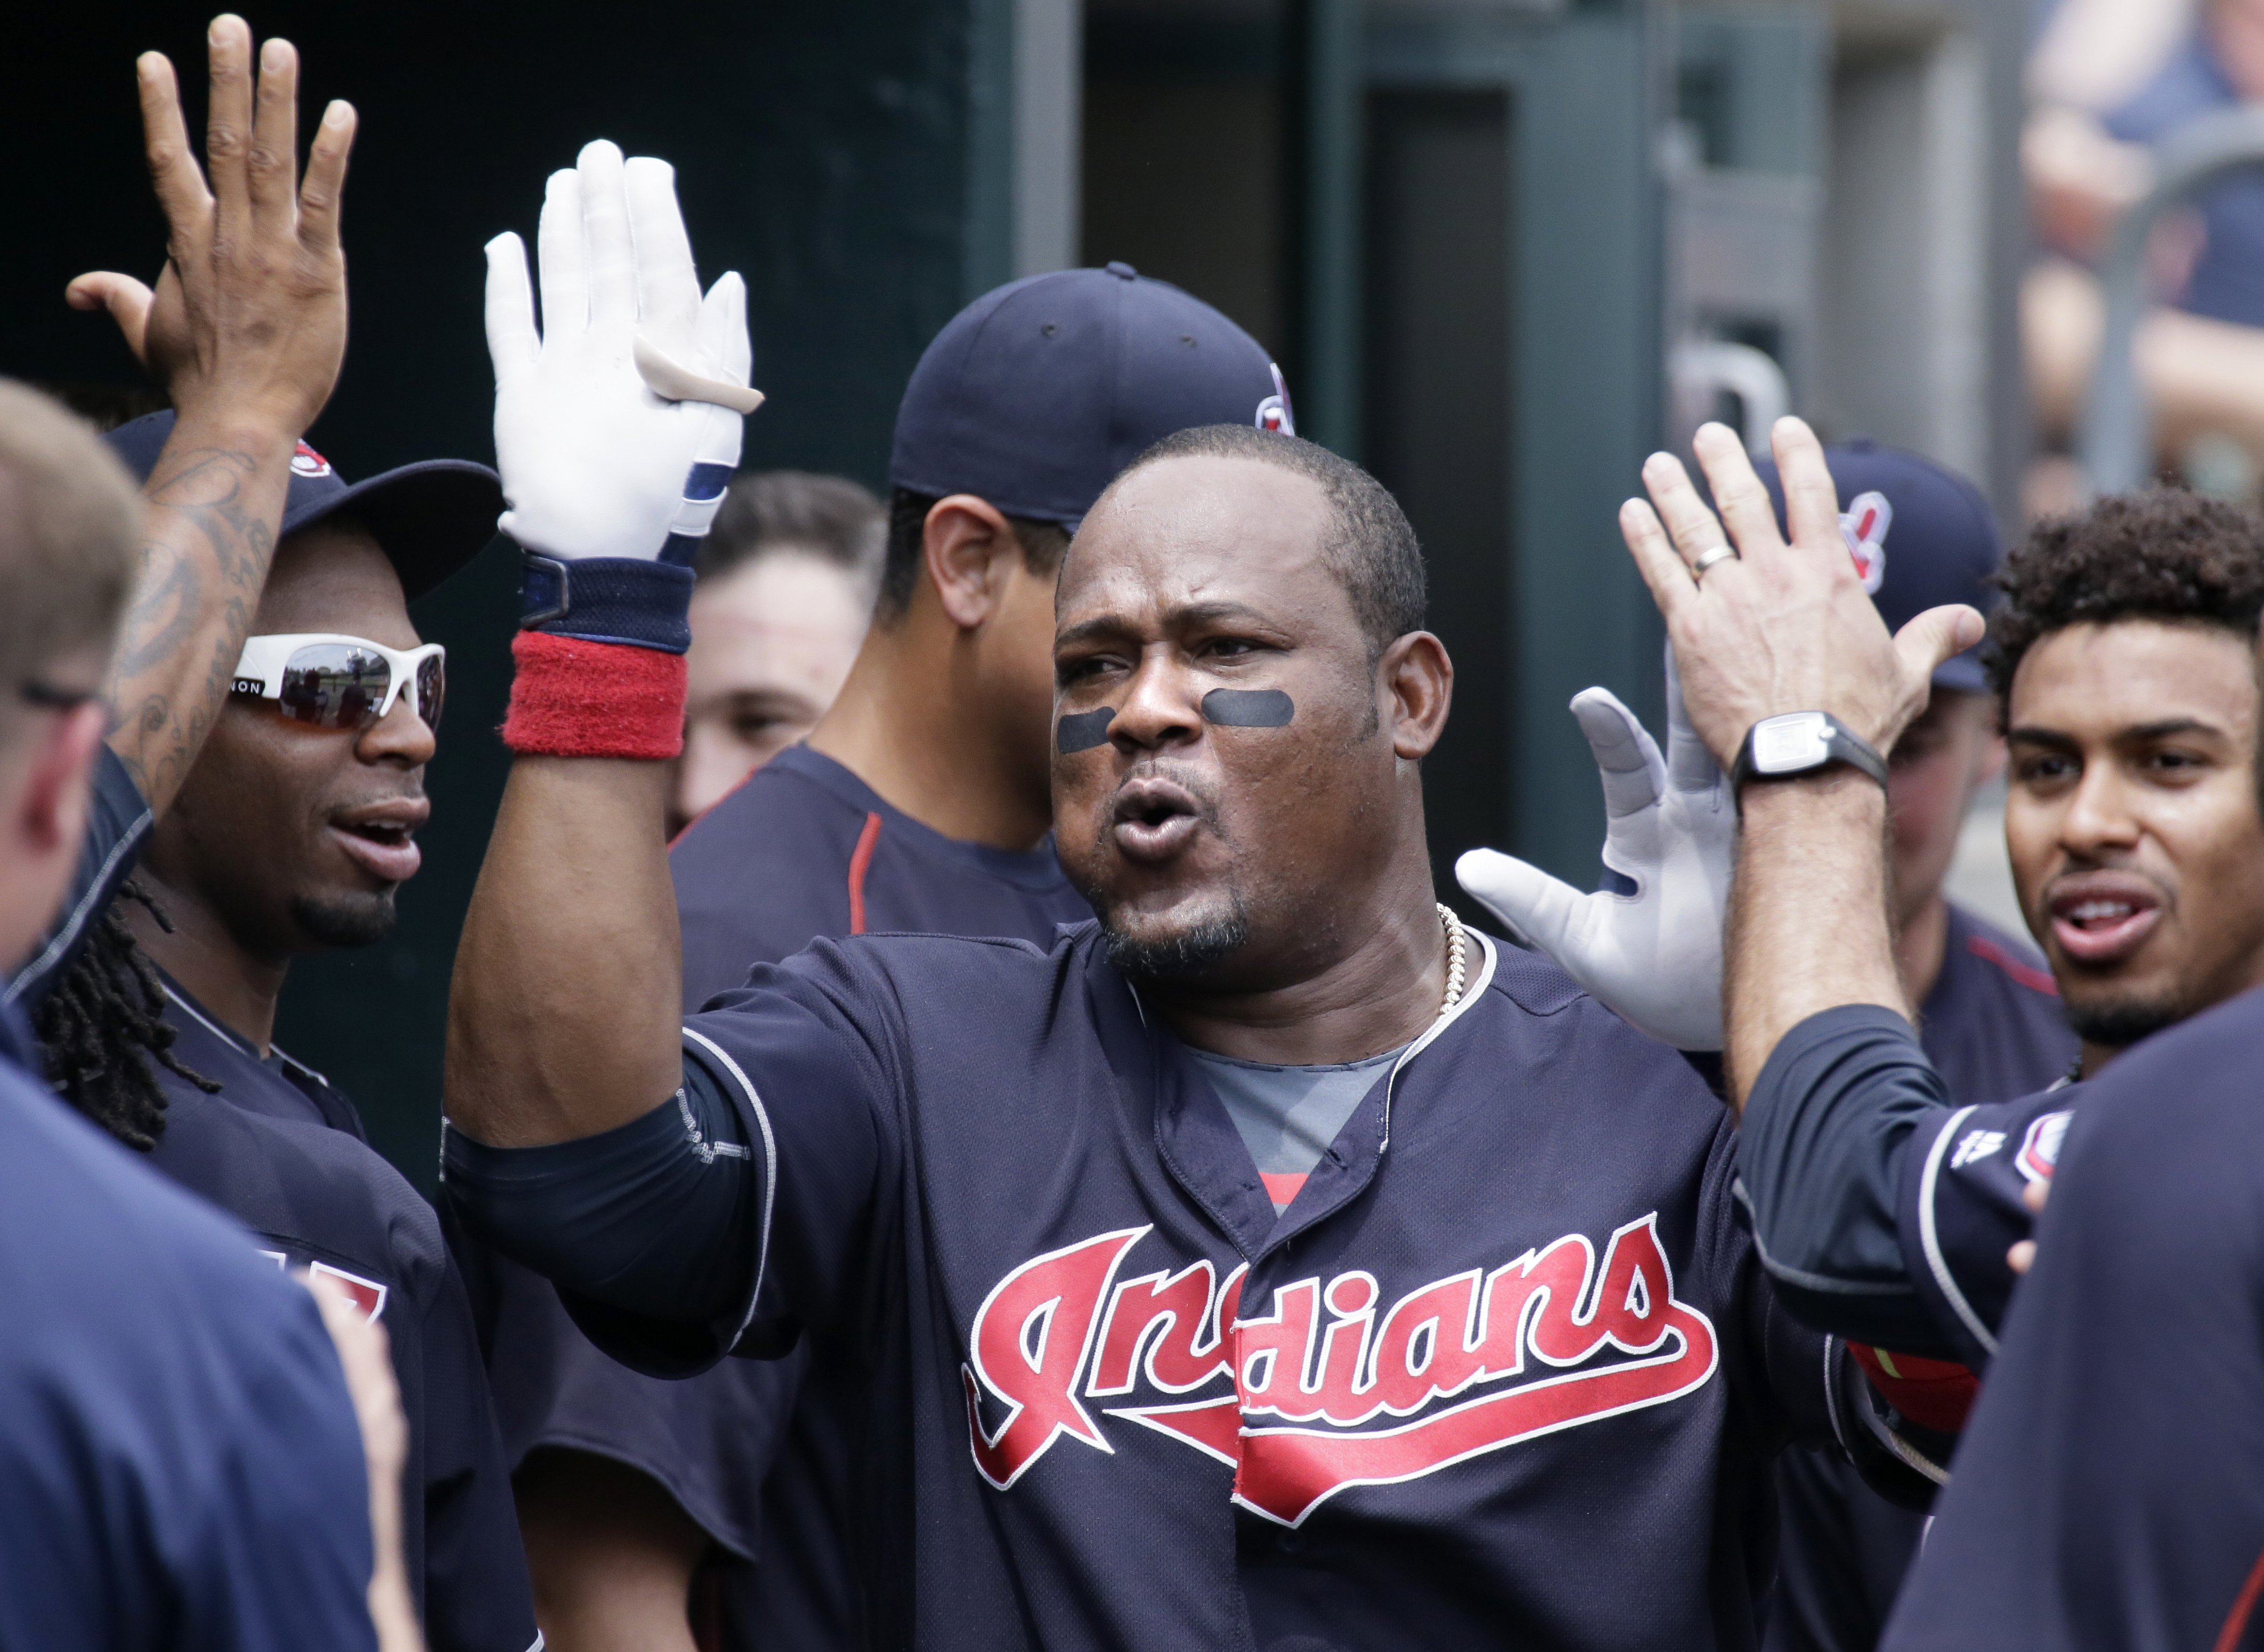 Cleveland Indians' Juan Uribe celebrates in the dugout after hitting a solo home run against the Detroit Tigers during the fifth inning of a baseball game Sunday, June 26, 2016, in Detroit. (AP Photo/Duane Burleson)